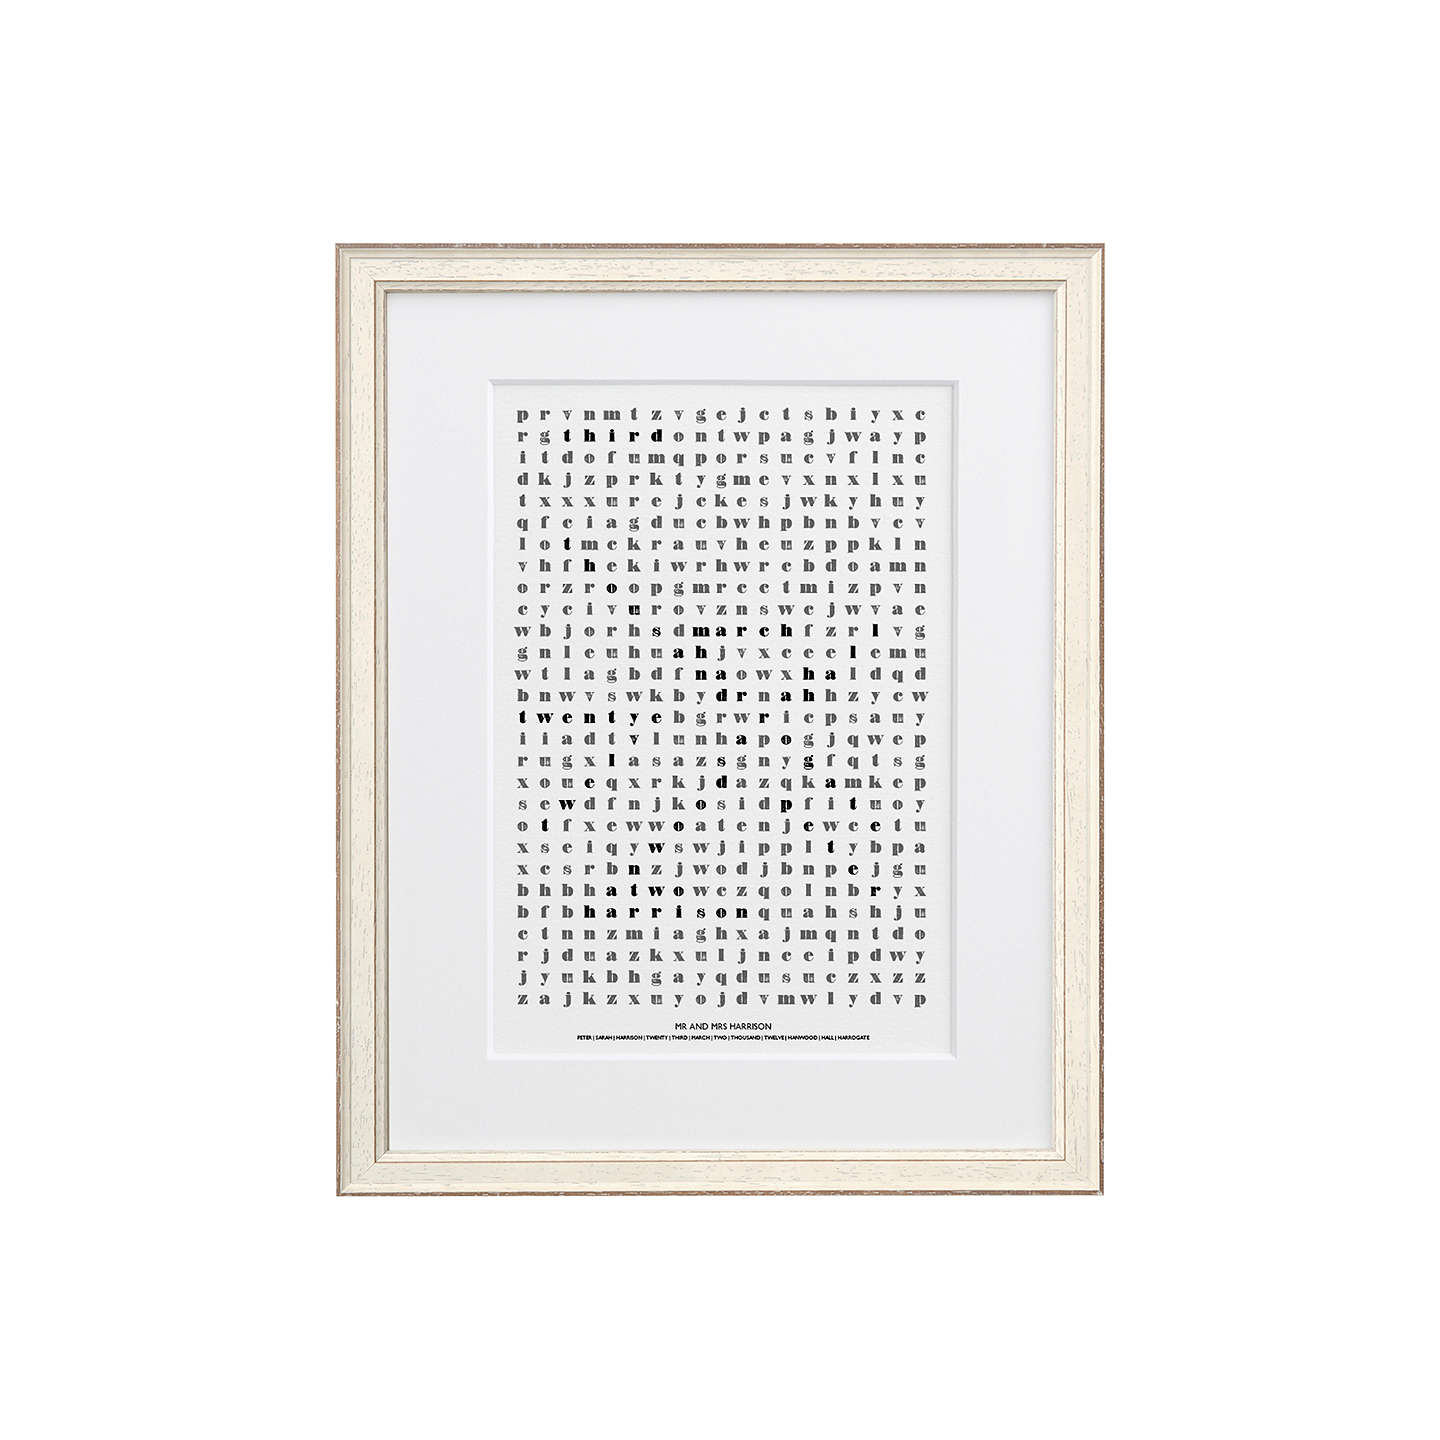 BuyLetterfest Personalised Wedding Word Search Framed Print, White Frame, 44.8 x 56.8cm Online at johnlewis.com